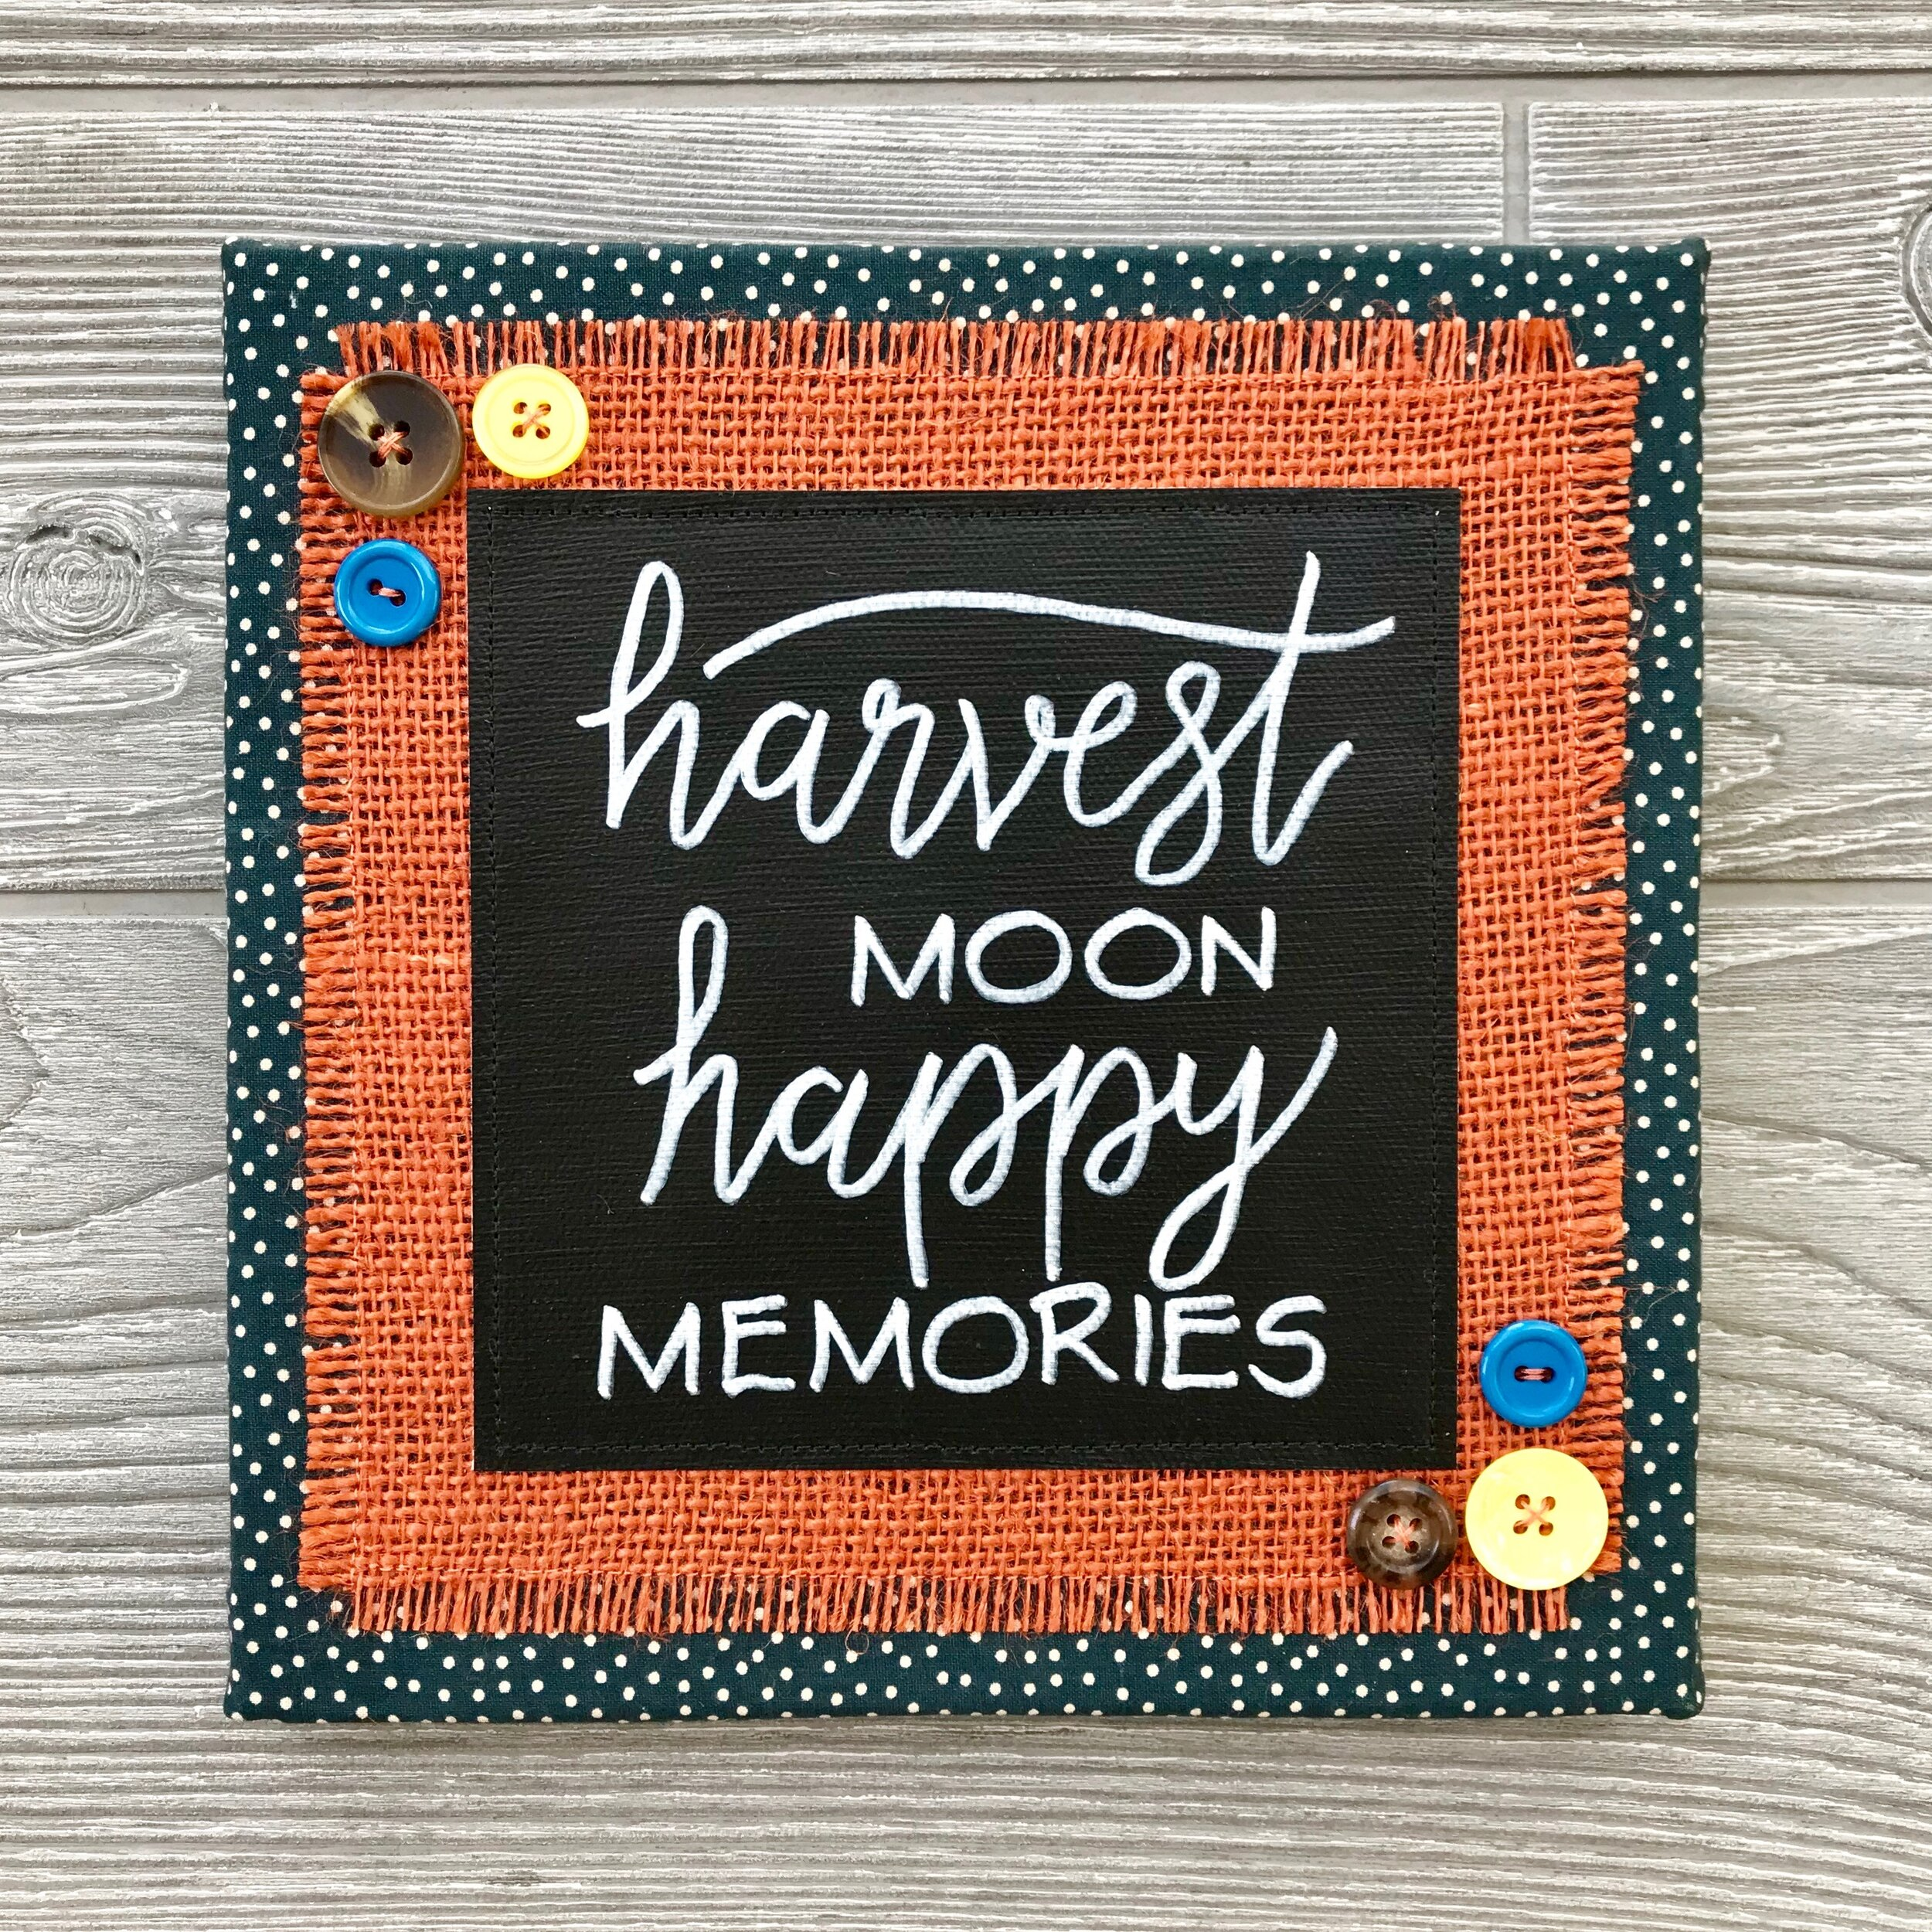 "Harvest Moon Happy Memories - Colorful leaves, warm apple cider, piles of pumpkins...these are the makings of happy memories. May this handcrafted artwork remind you of treasured moments with the people you love.8""x8"" Handmade Literary ArtworkElements: hand-painted and hand-lettered canvas, colorful burlap, patterned fabric, coordinating buttons, wood frame, claw hangerPrice: $25 (includes US-based shipping)"